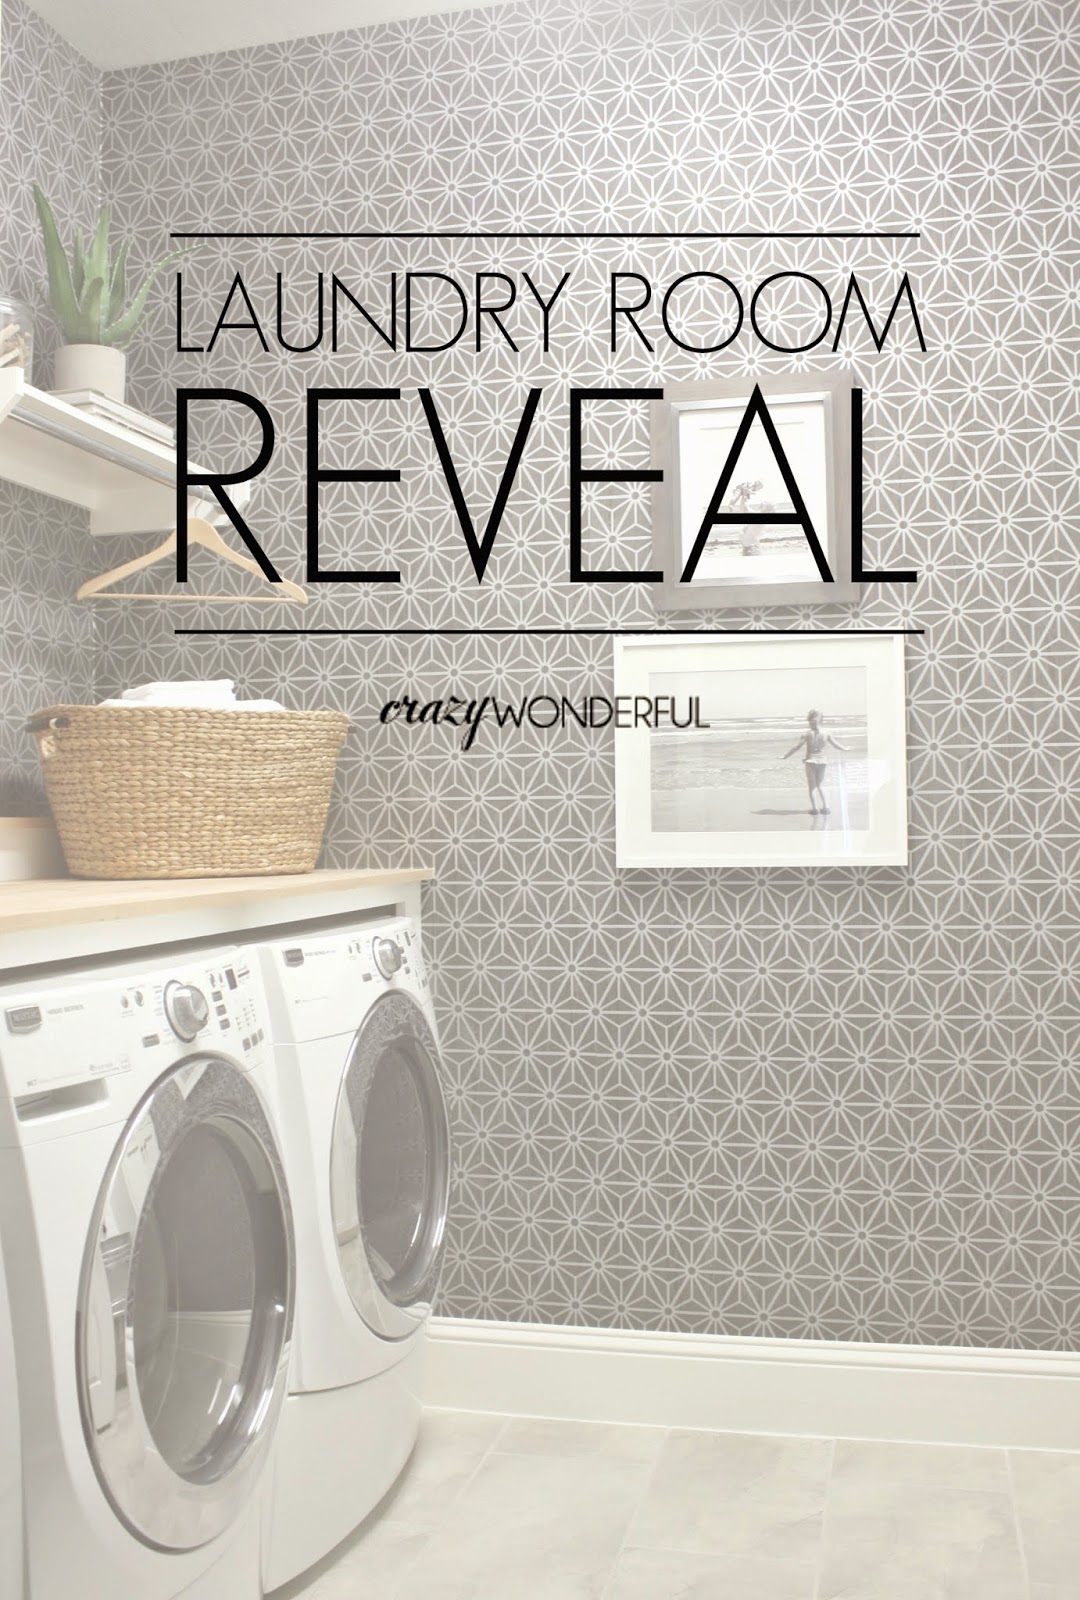 Laundry Room Reveal Crazy Wonderful